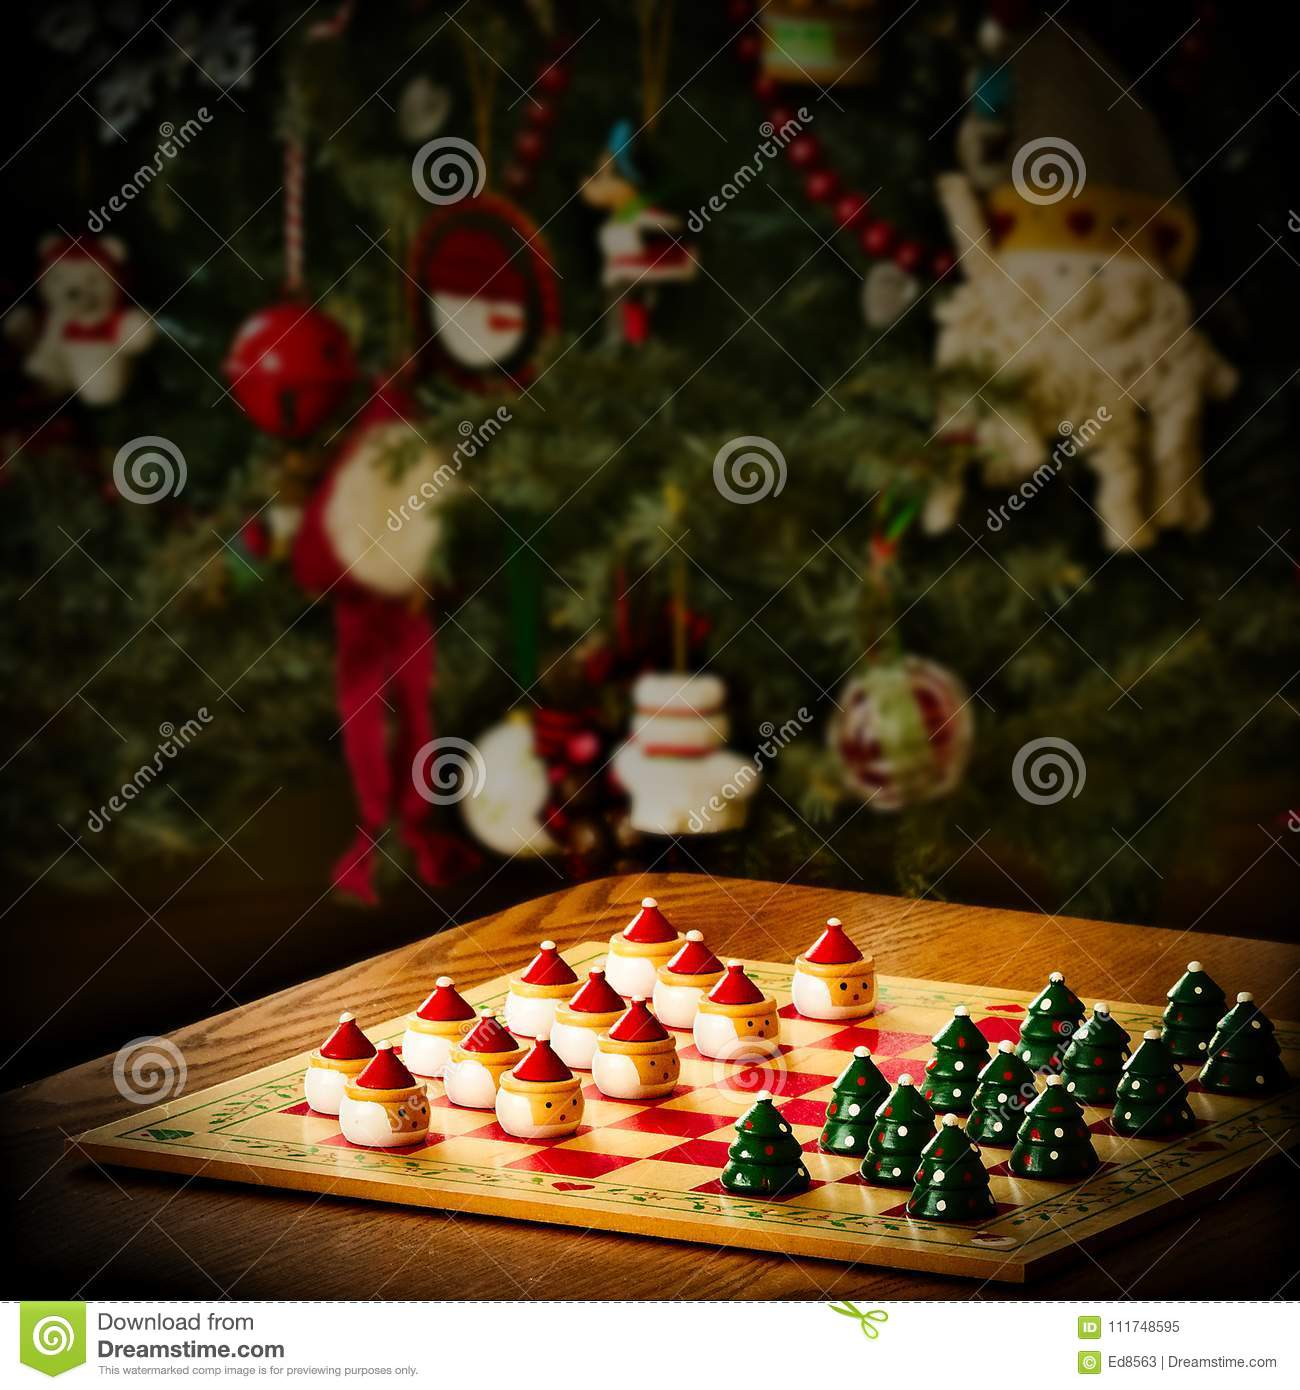 download christmas holiday checker board game and tree decorations stock image image of activity - Christmas Decoration Games